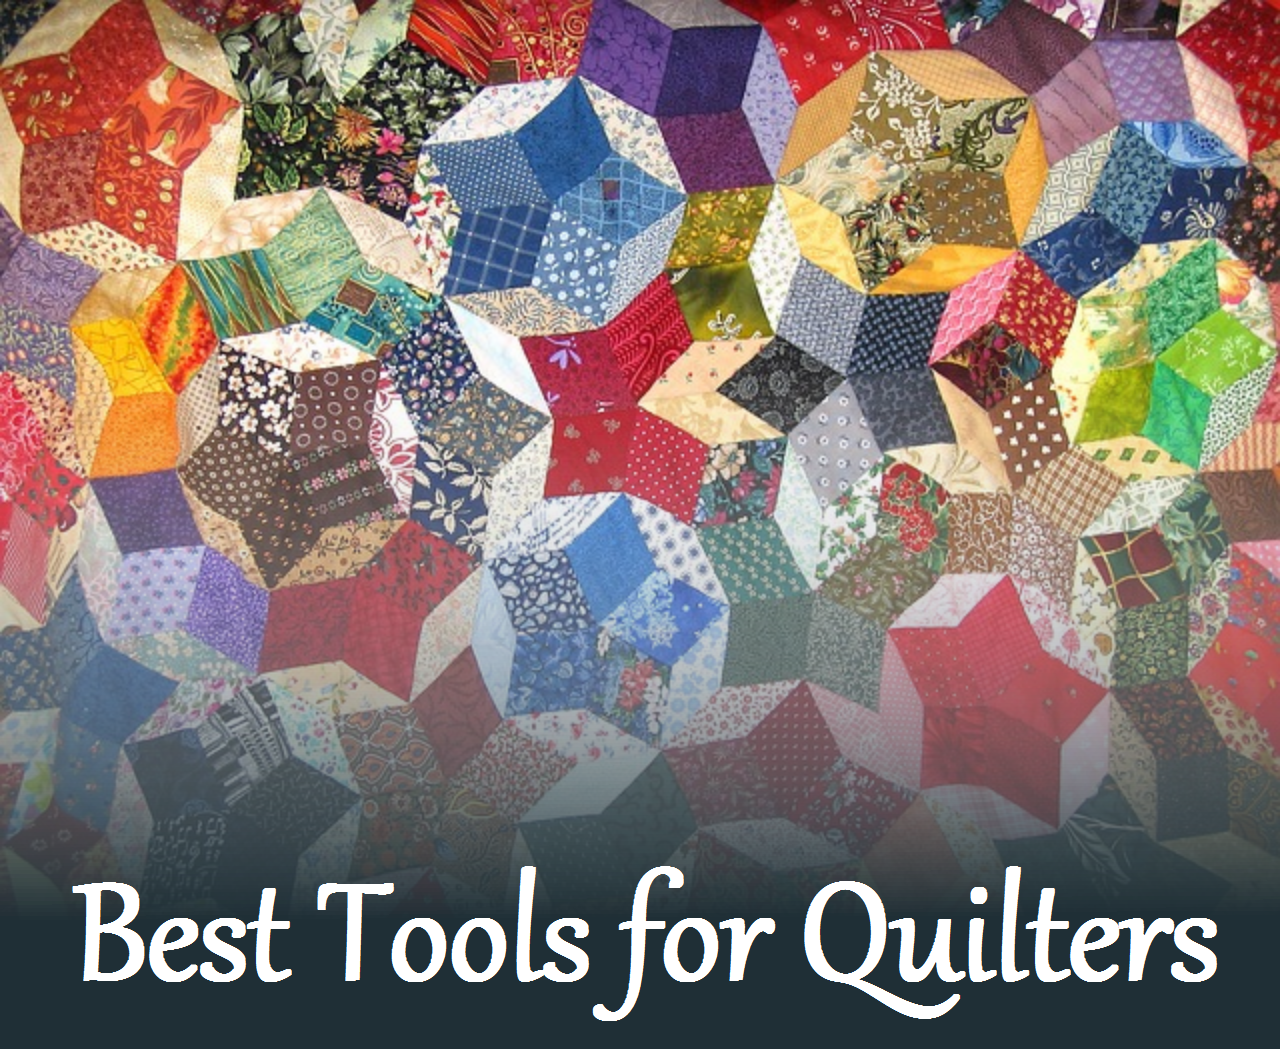 Best Calculation Tools for Quilting | Quilting, Art and Tools : tools needed for quilting - Adamdwight.com